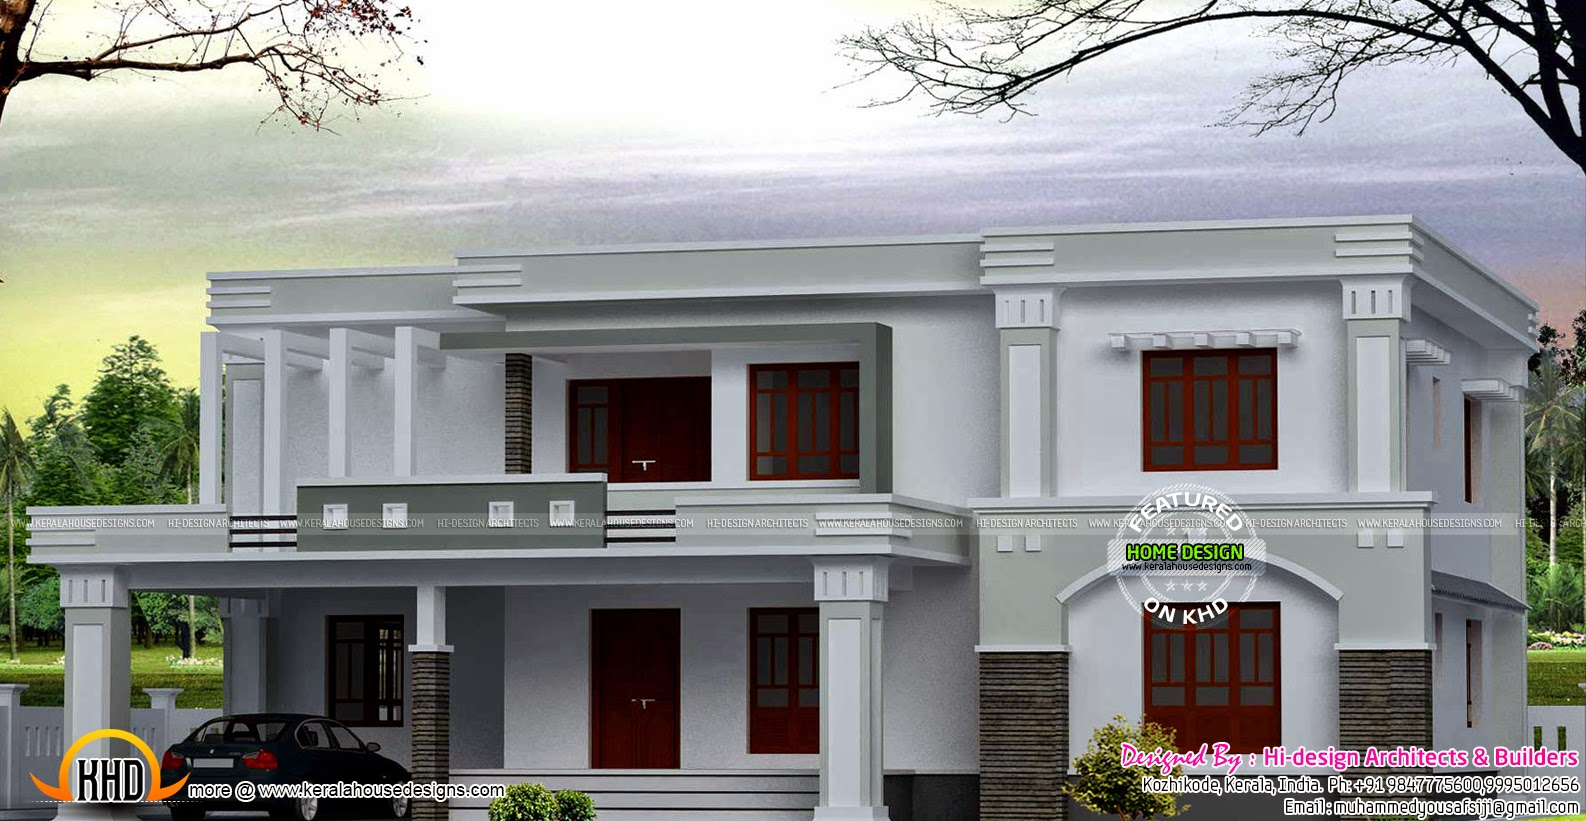 Total flat roof house kerala home design and floor plans for Flat roof home plans